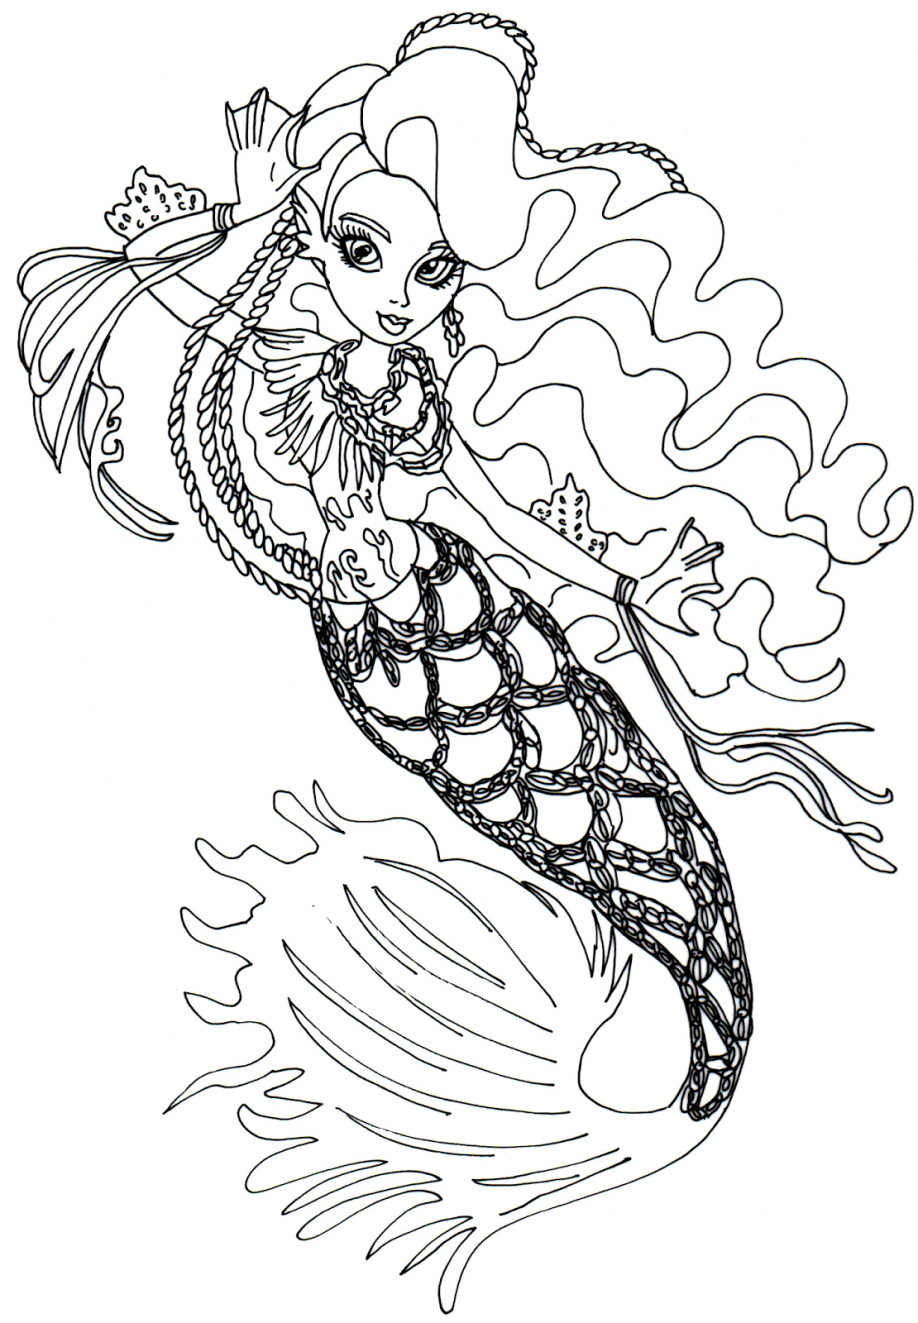 Coloring Pages Monster High Coloring Pages 13 Wishes monster high coloring pages pdf az 13 wishes free coloring